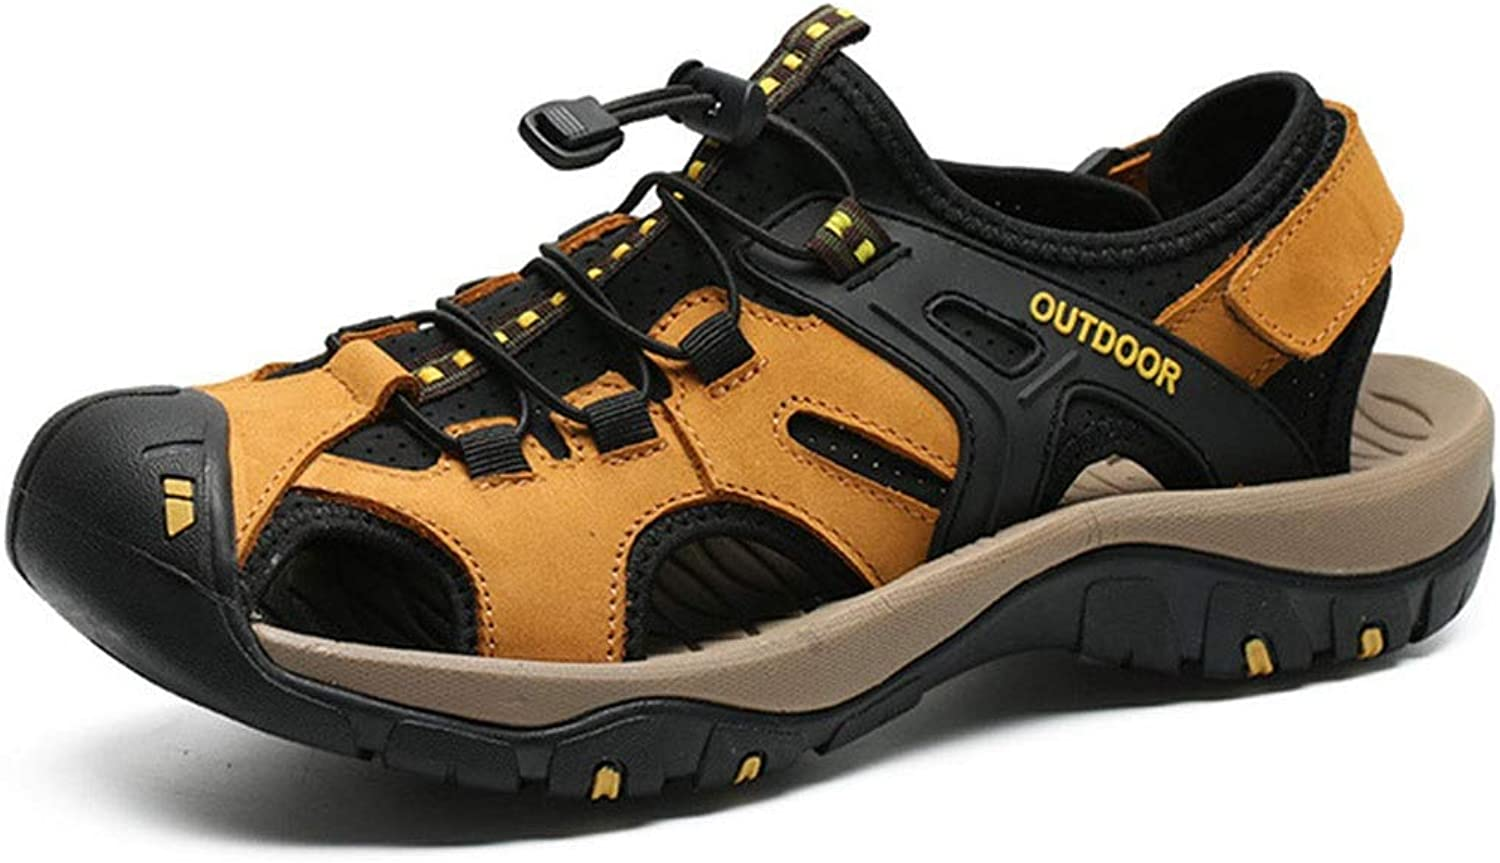 Sandals Men's, Breathable Non-Slip Closed-Toe Outdoor Hiking shoes (color   Yellow, Size   38)